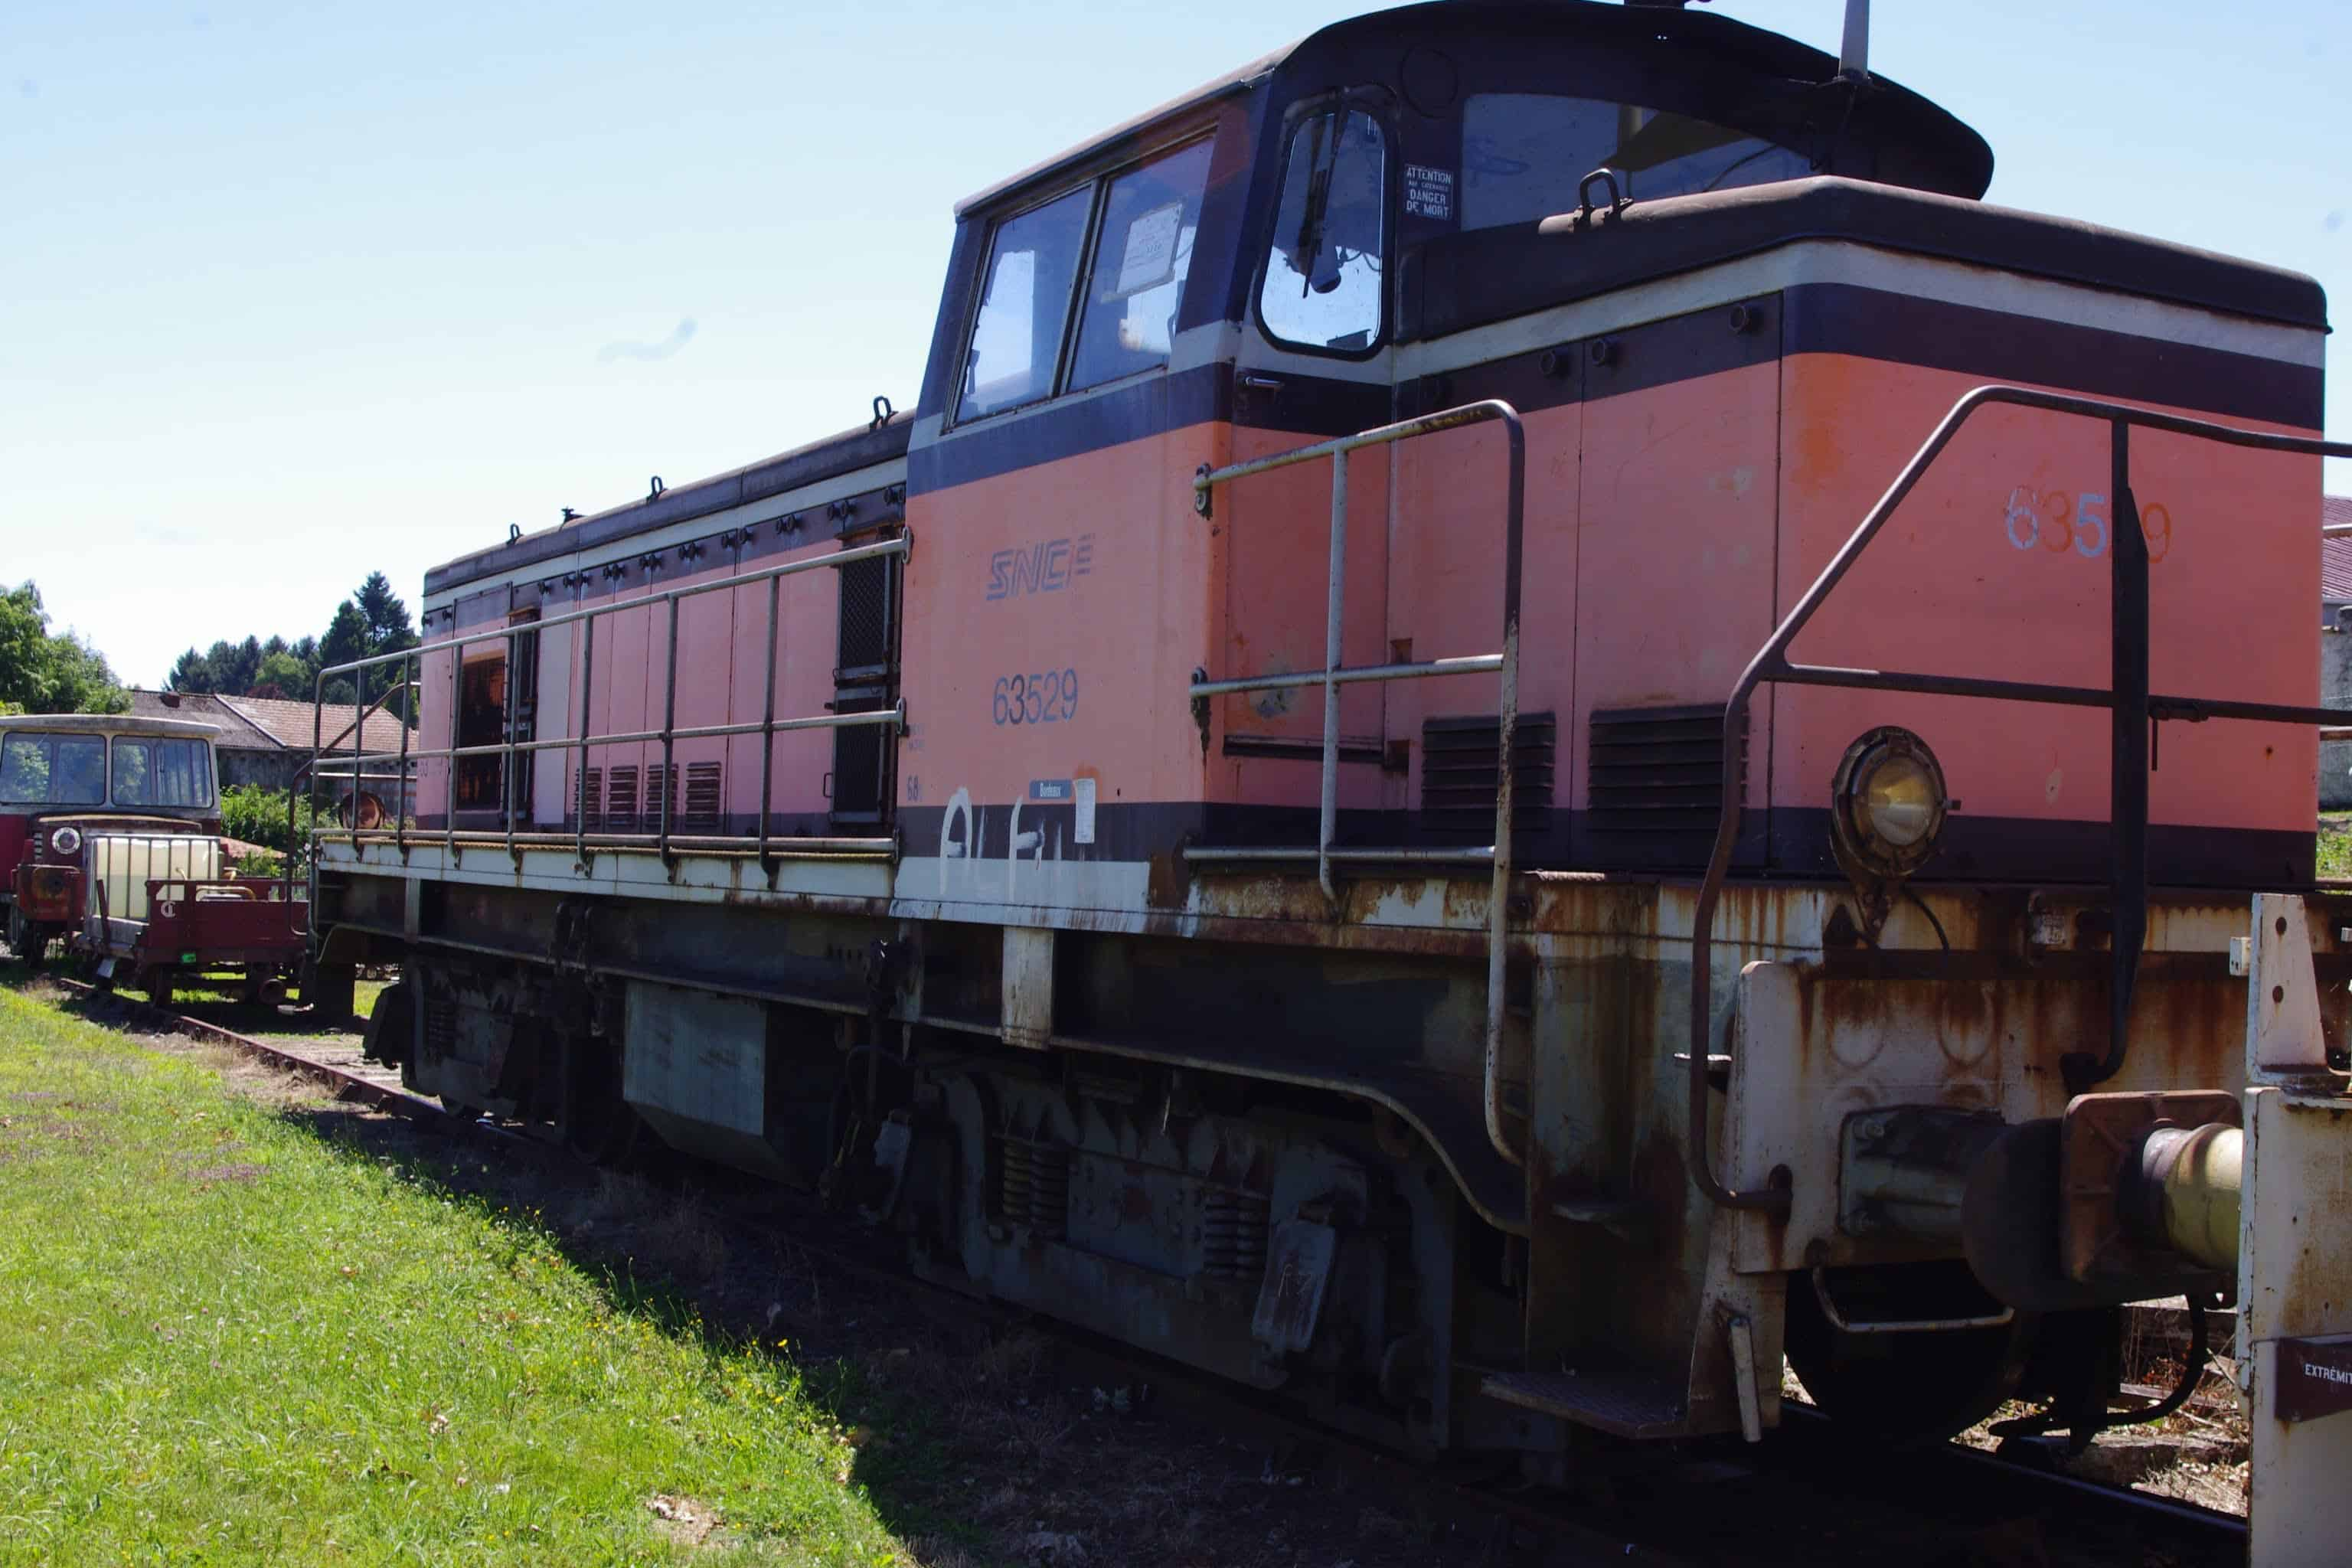 locomotive BB63529